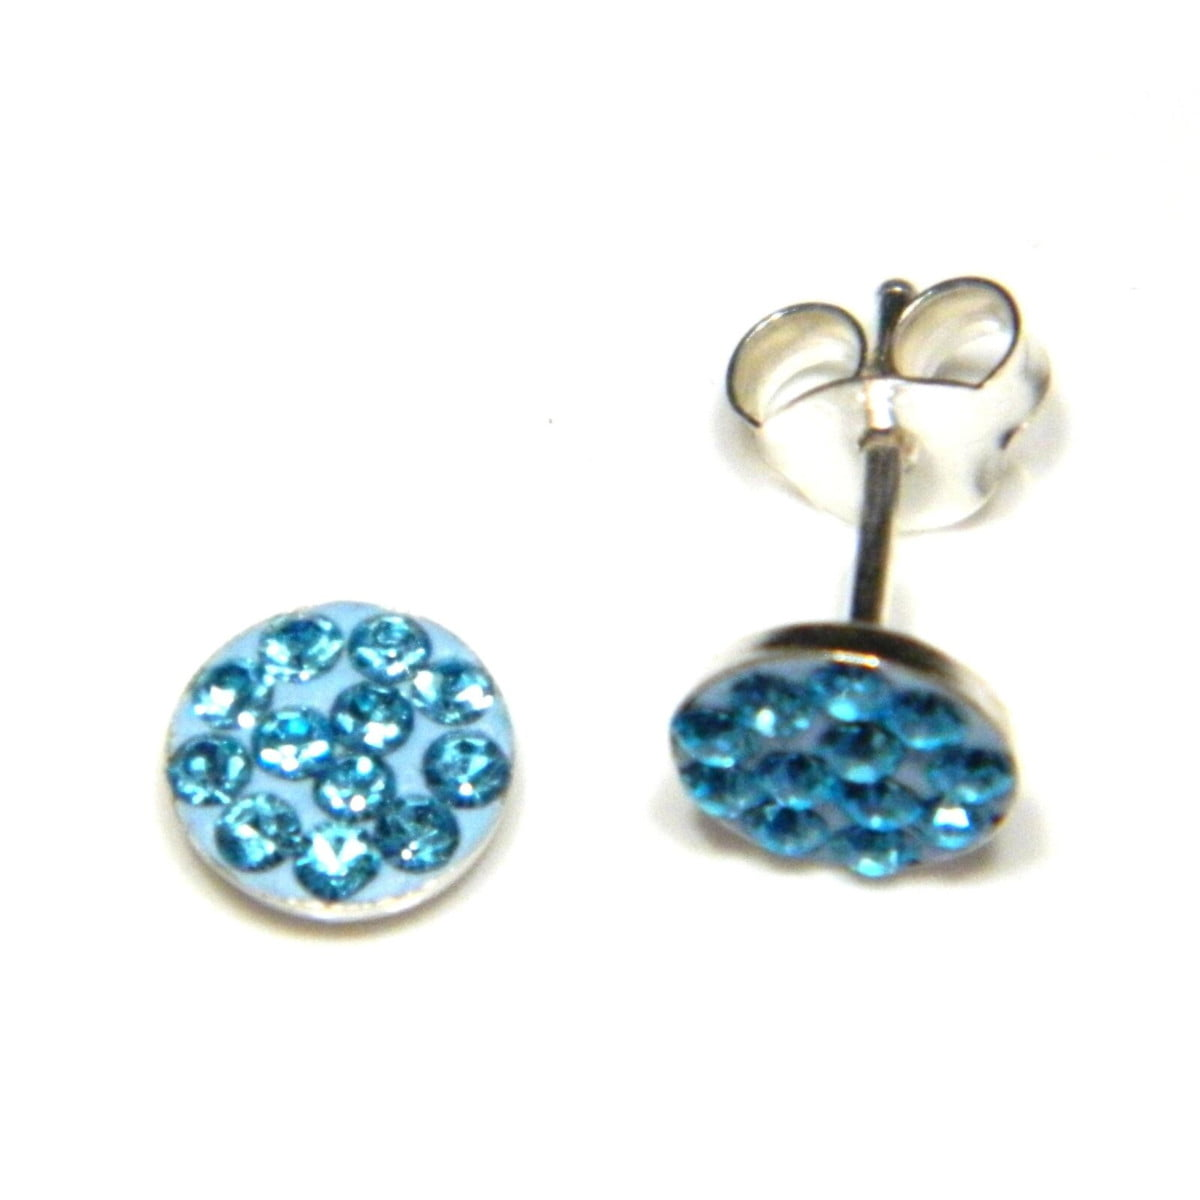 6 mm aqua blue coloured crystal round stud earrings in sterling silver